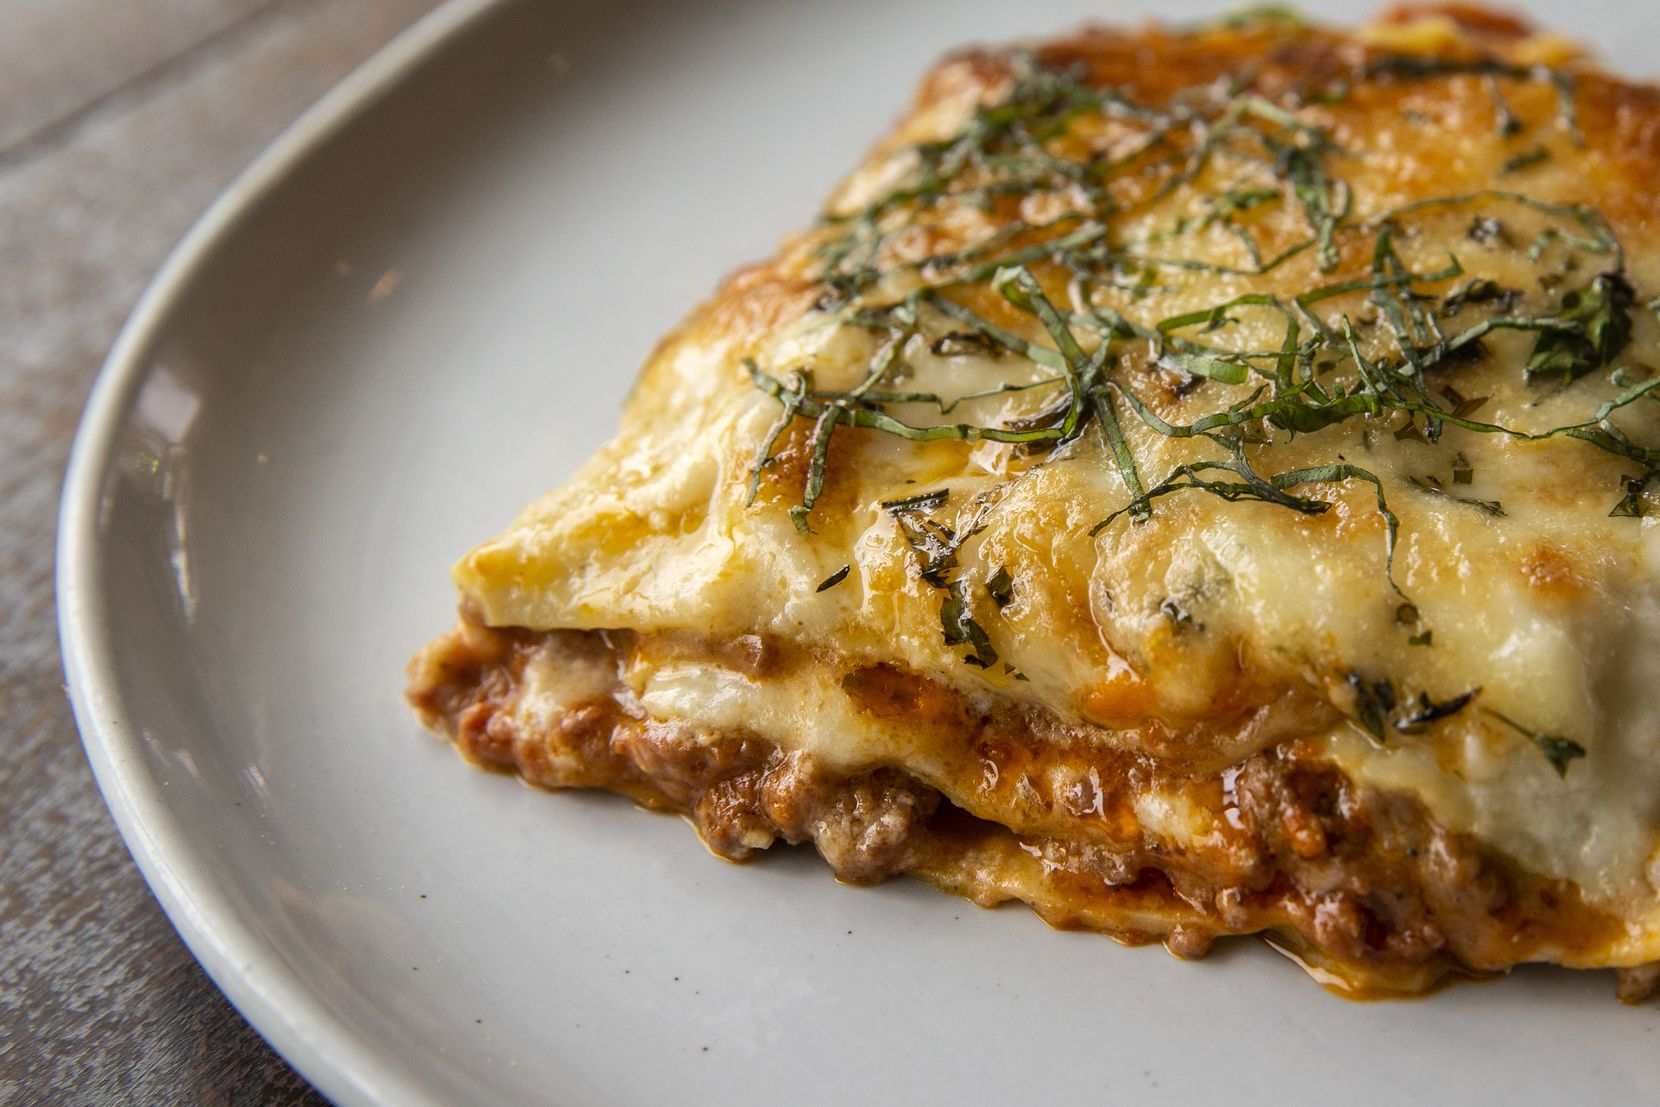 The lasagna bolognese at Gemma American bistro in Dallas